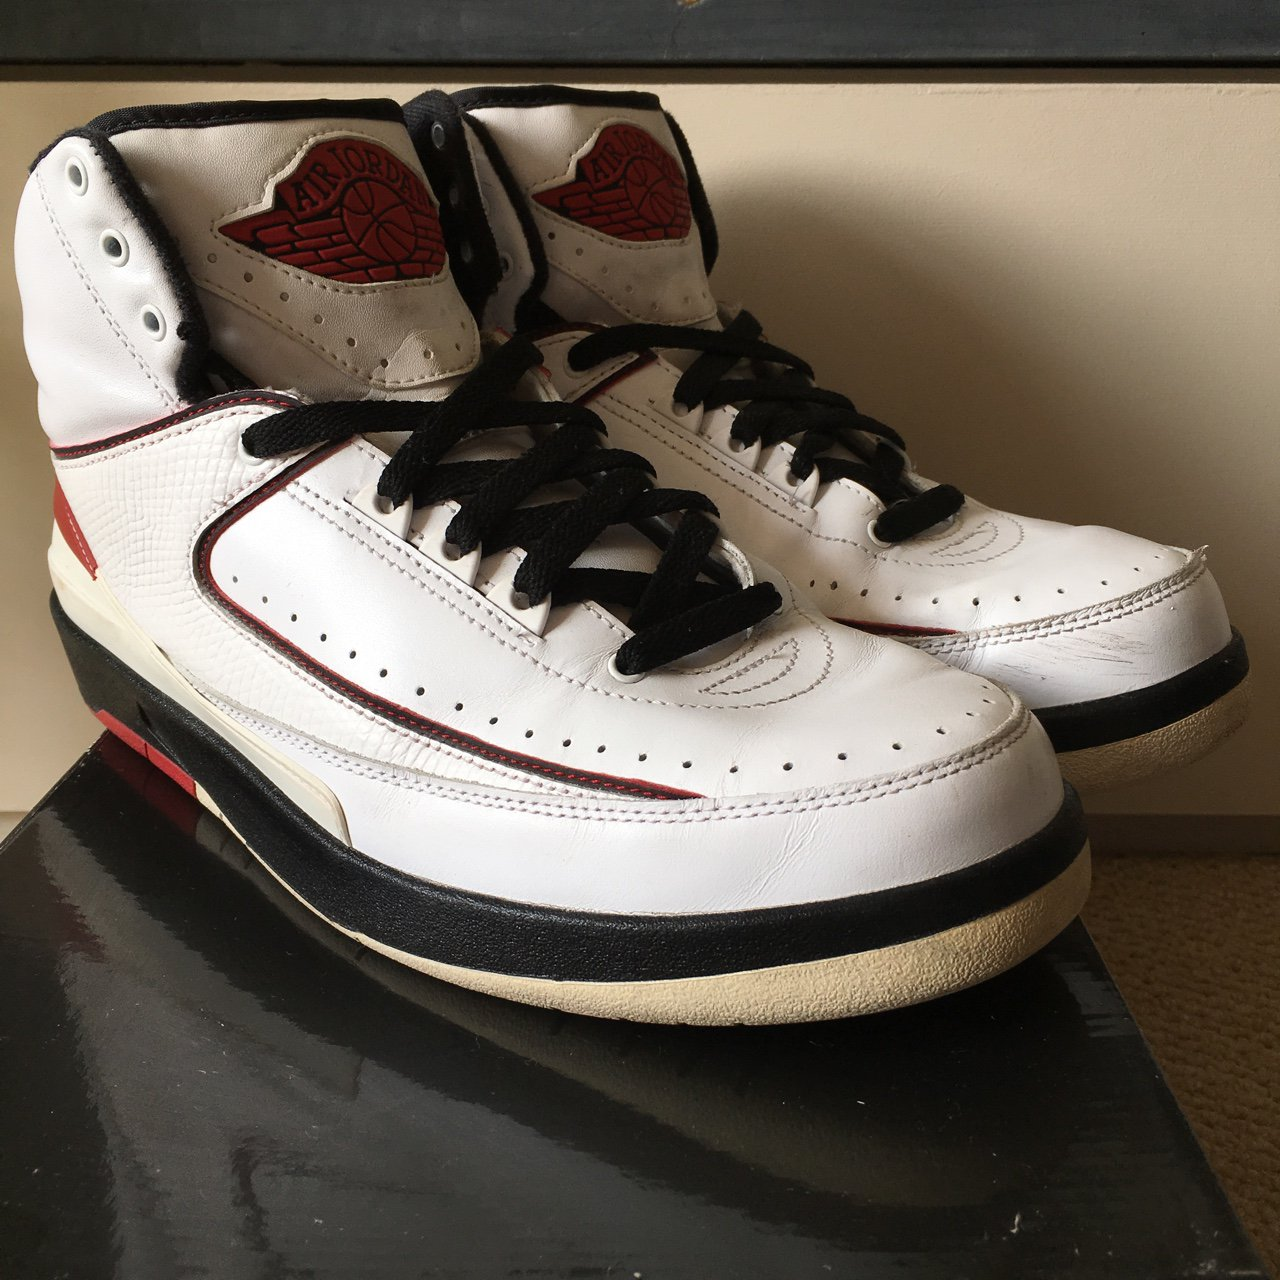 d8a3b152f8bd Air Jordan 2 Retro QF White Black Varsity Red. Worn with a - Depop